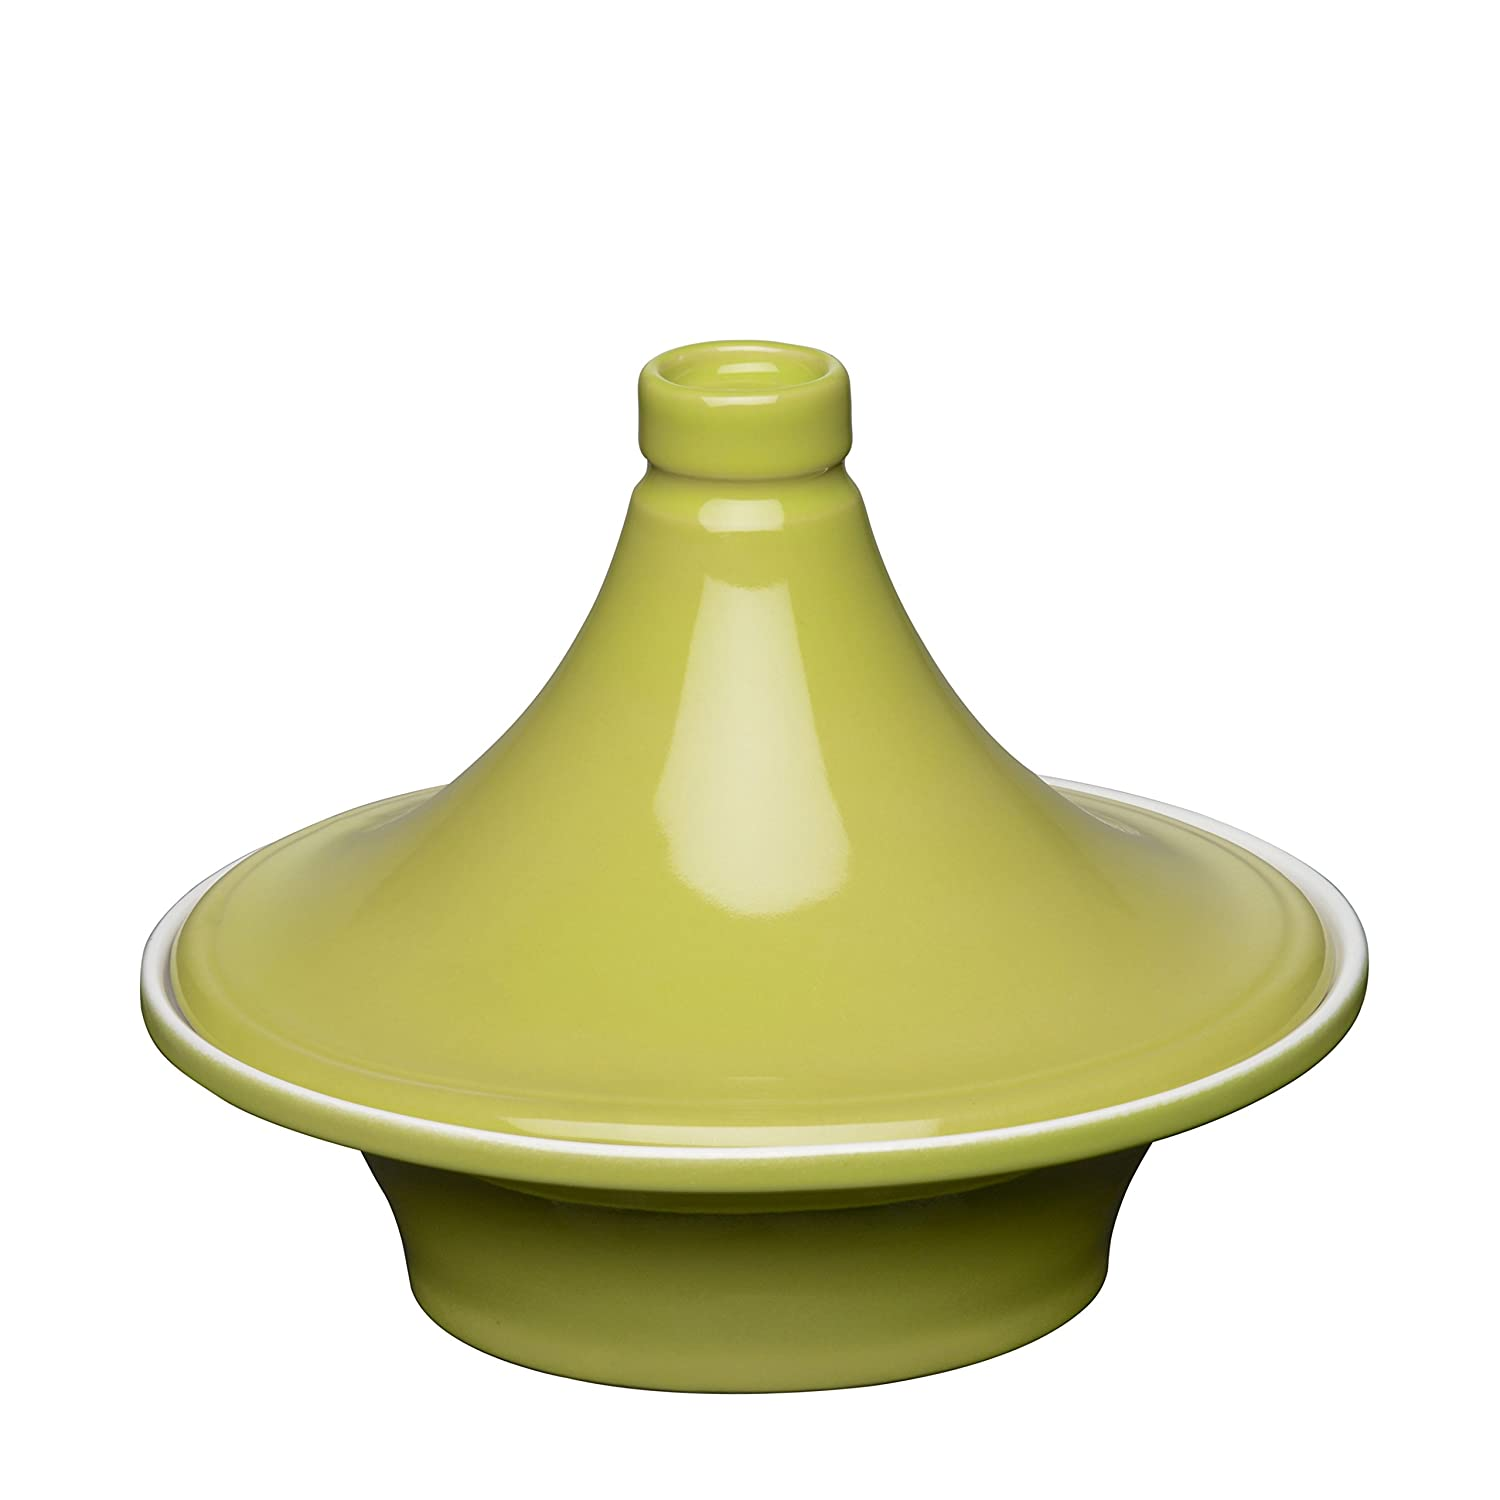 Premier Housewares OvenLove Tagine, Small, Lime Green 0104431